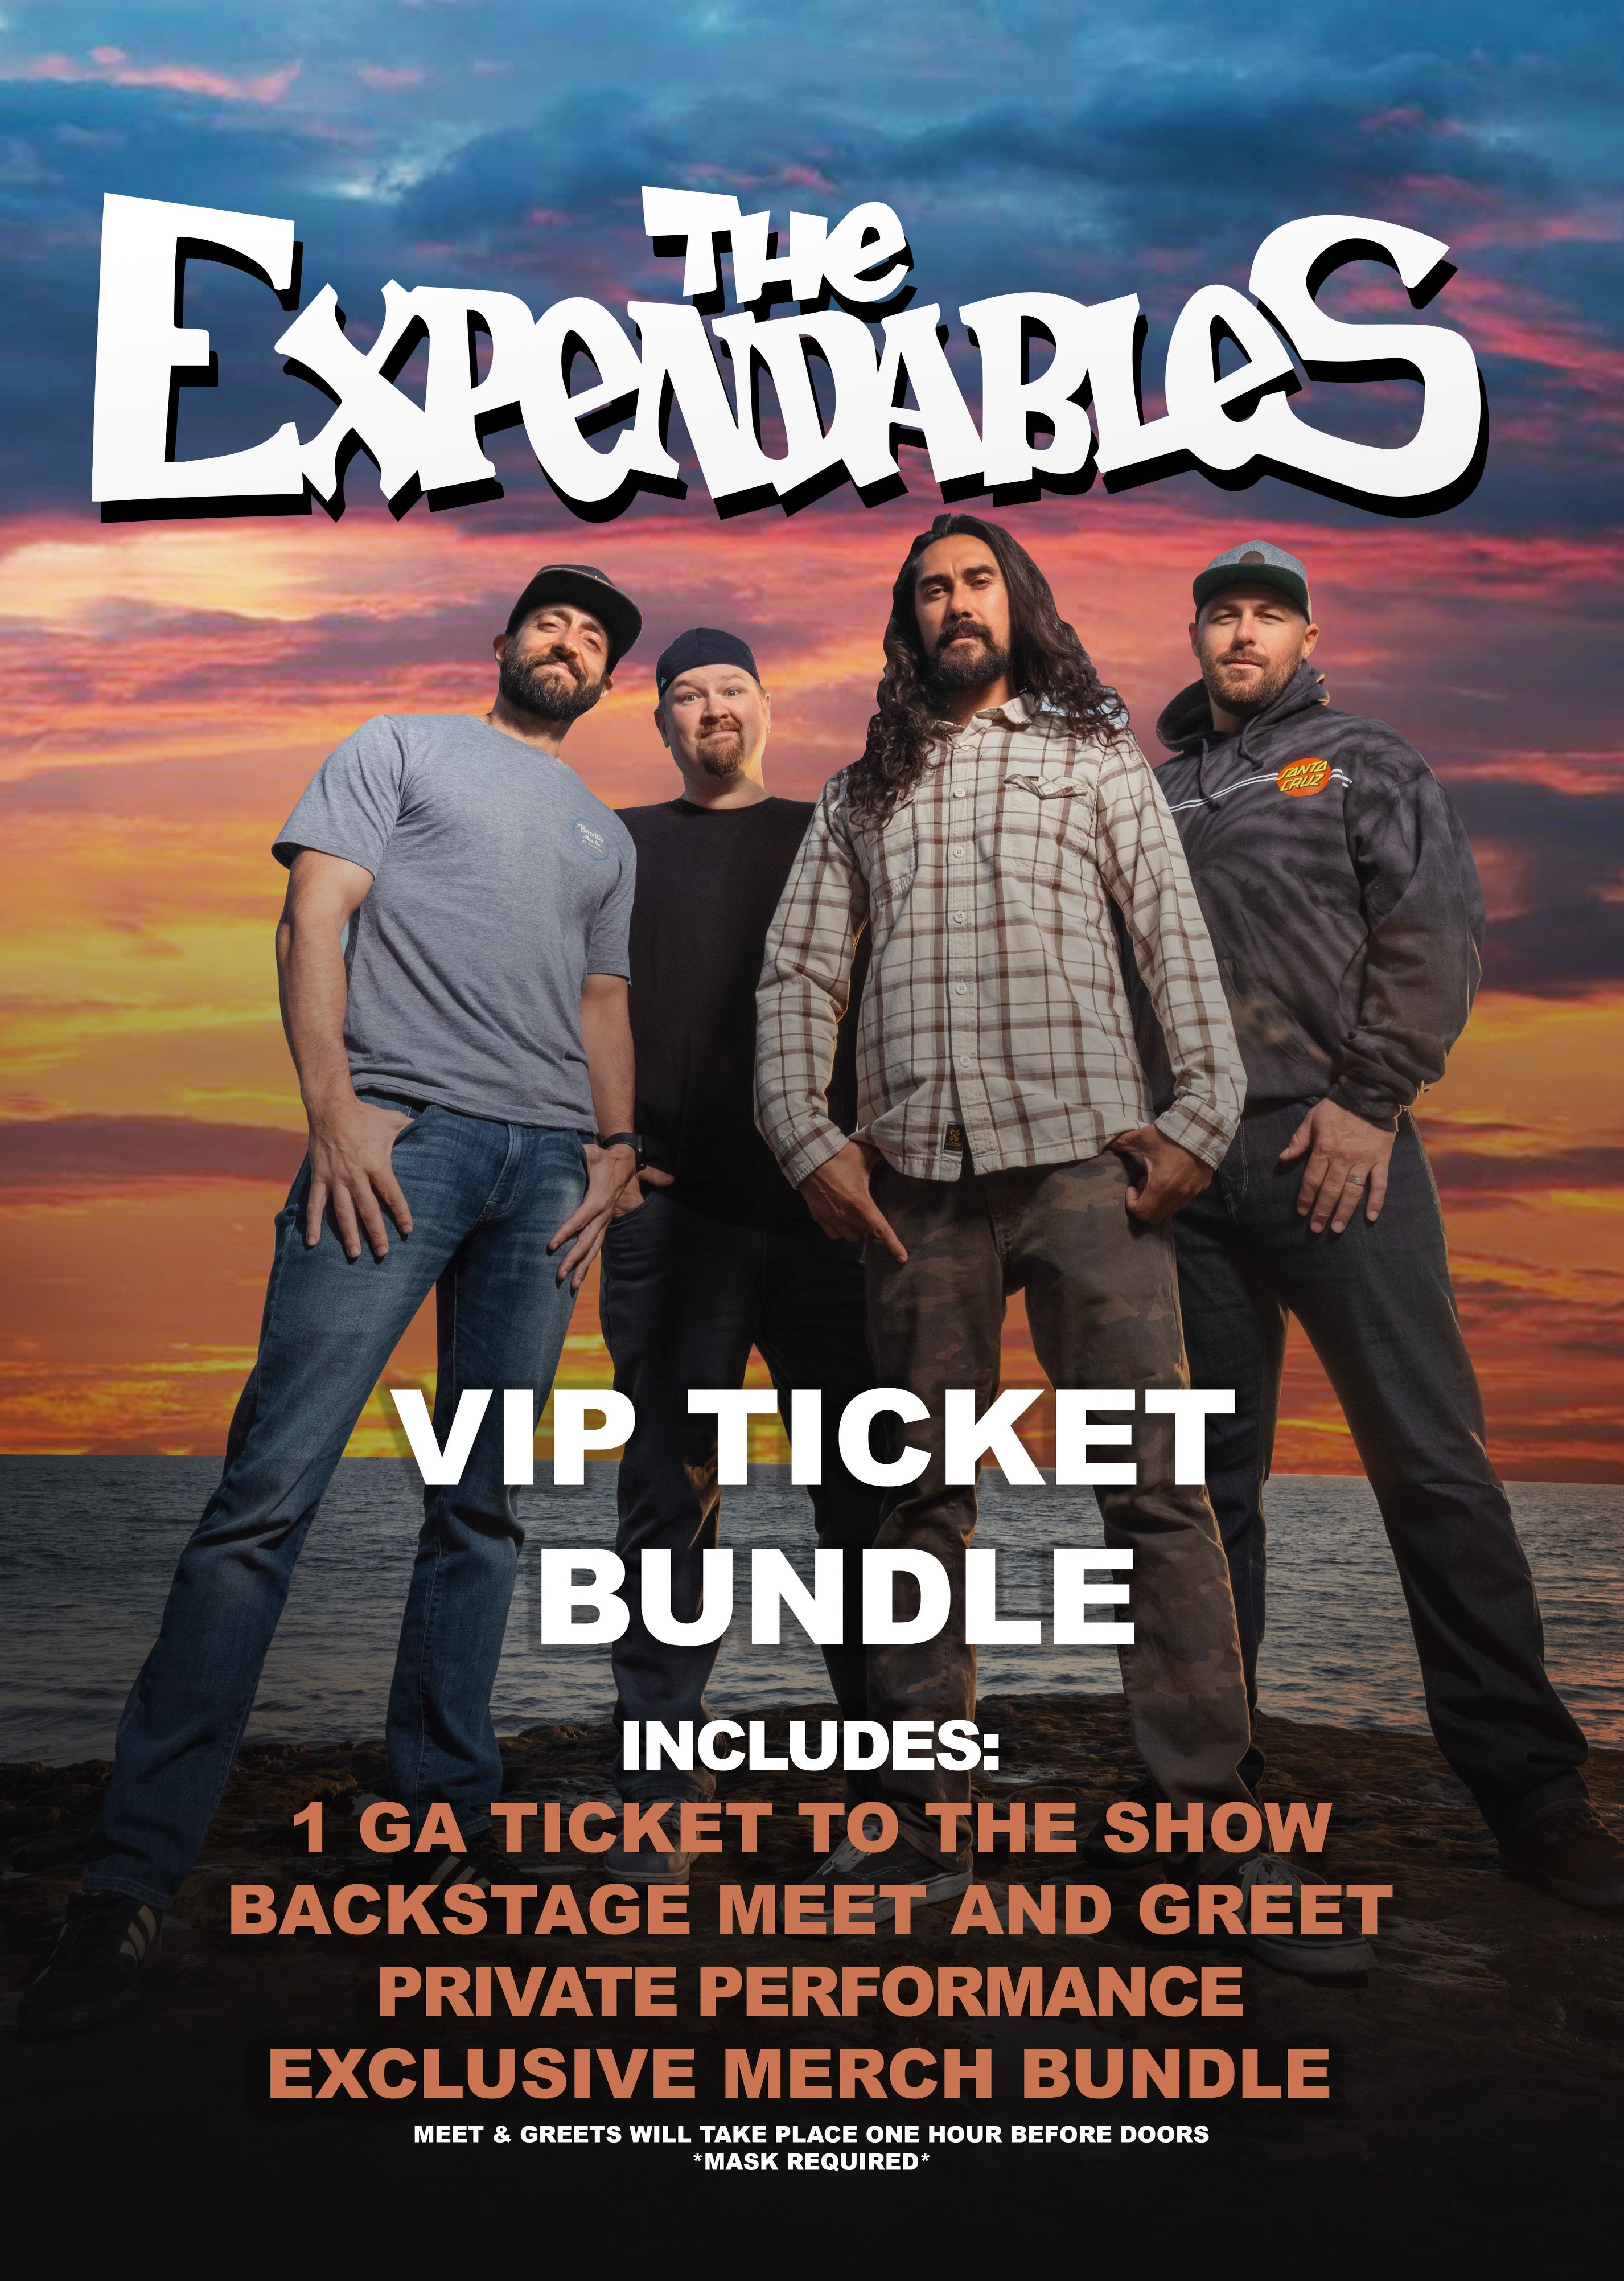 ExpendaHoo! VIP Package (The Expendables) at House of Rock: